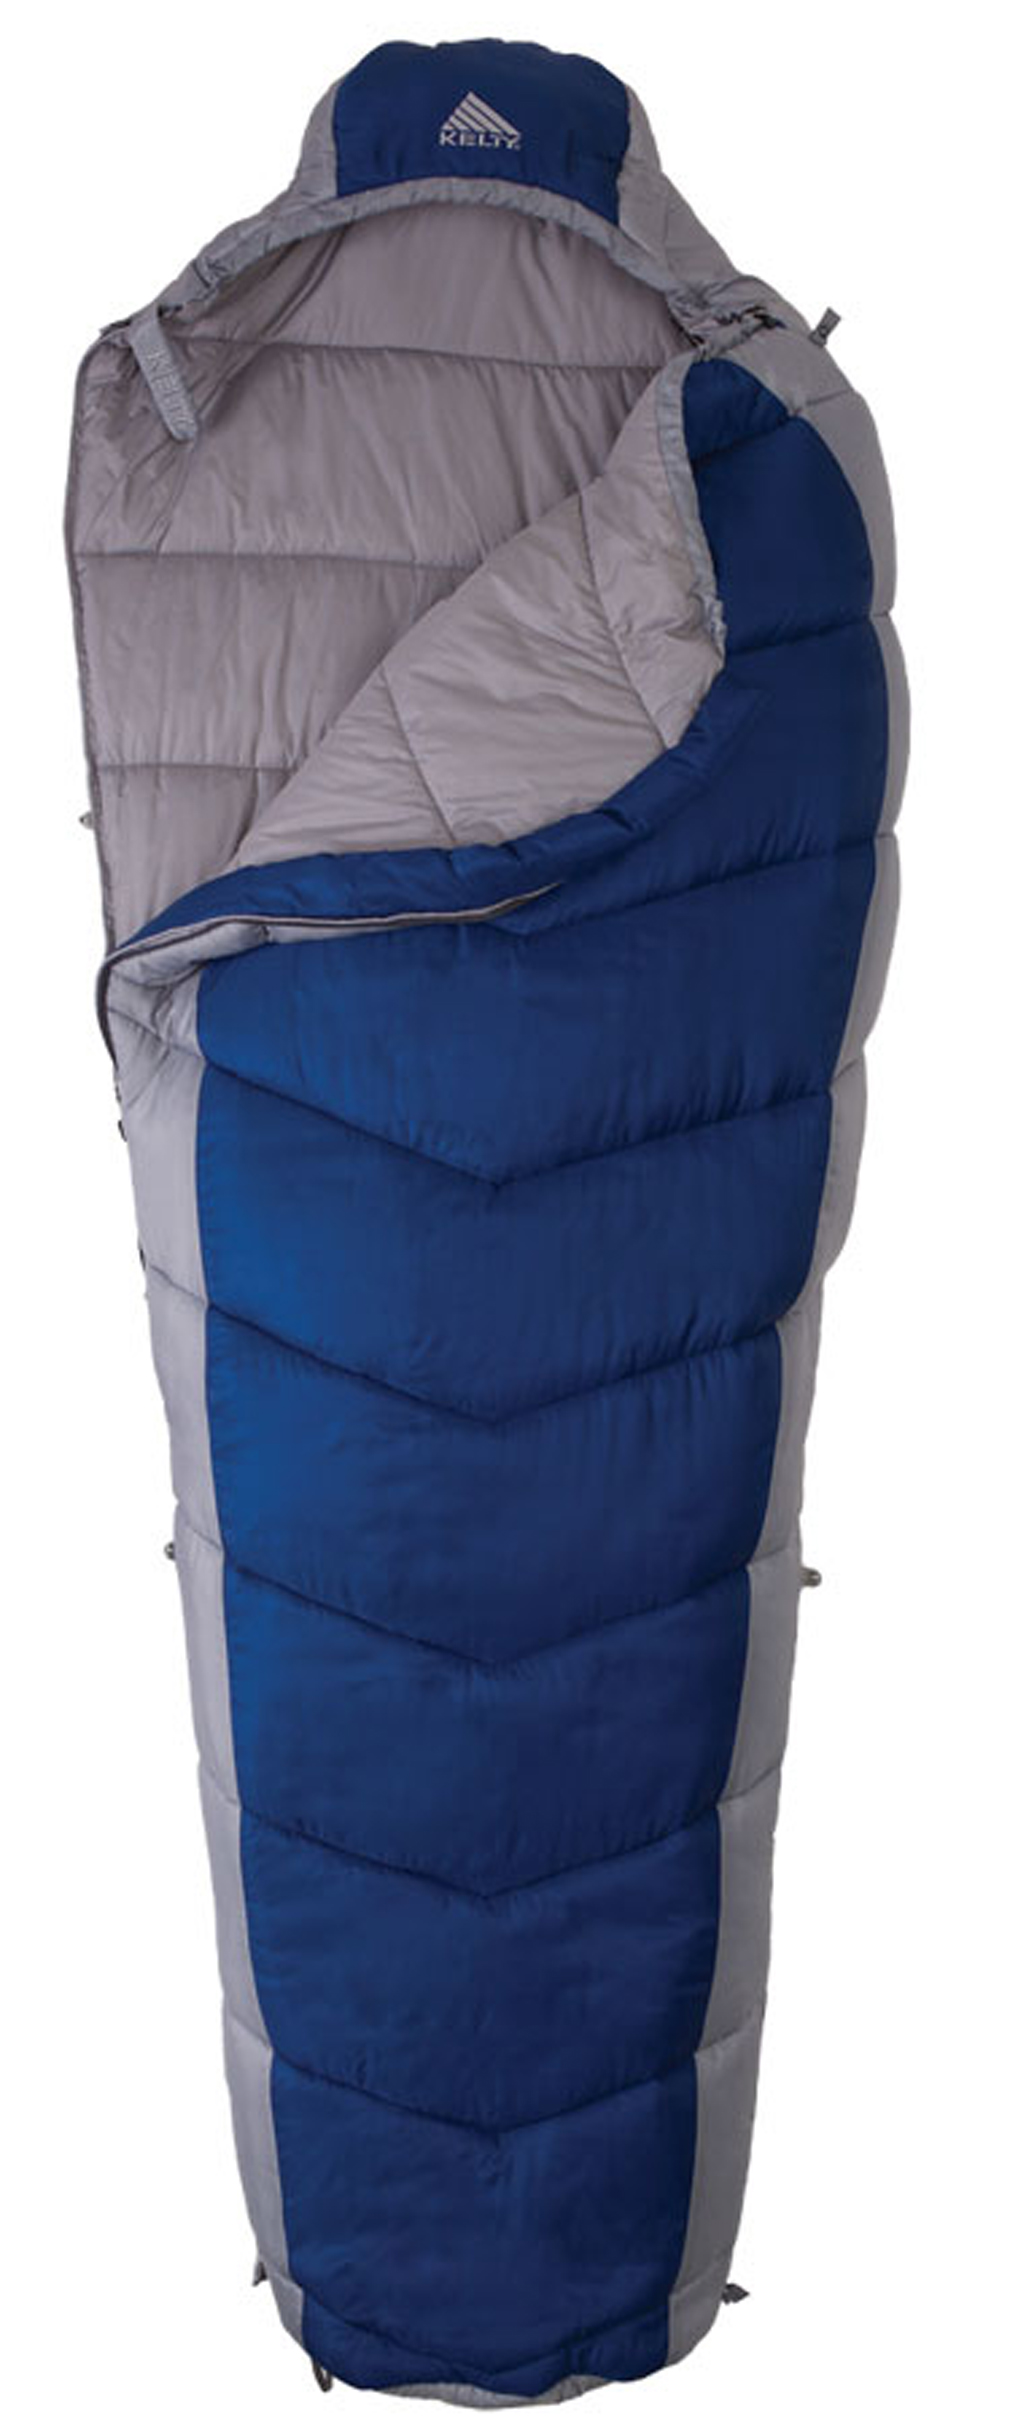 "Camp and Hike The Light Year XP 40 degrees is a summer-weight synthetic bag with a hip-length zipper and zippered foot vent that is perfect for light and fast adventures in unpredictable conditions. Key Features of the Kelty Light Year XP 40 Degree Long Sleeping Bag: Quilt-through construction Chevron stitching Efficient, form-fitting hood Hip-length, two-way locking zipper Zipper draft tube with anti-snag design Zippered foot vent Internal liner loops External snap loops allow bag to function as a liner Sleeping pad security loops Hang loops for storage Micro FatMan and Ribbon drawcords Micro captured cordlock Ground-level side seams prevent heat from escaping Differential cut to maximize loft and warmth Ultralight compression stuff sack included Storage sack included Temp Rating: 40 degrees/ 4 degrees C Shape: Mummy Fits to 6'6""/ 198cm Length: 86""/ 218cm Shoulder girth: 64""/ 163cm Fill weight: 20 oz/ 0.6kg Total weight: 2 lb 6 oz/ 1.1kg Stuffed diameter: 9""/ 23cm Stuffed length: 16""/ 41cm Insulation: Climashield XP Shell material: 30D polyester diamond cross-dye ripstop Liner material: 50D polyester microfiber pongee - $57.95"